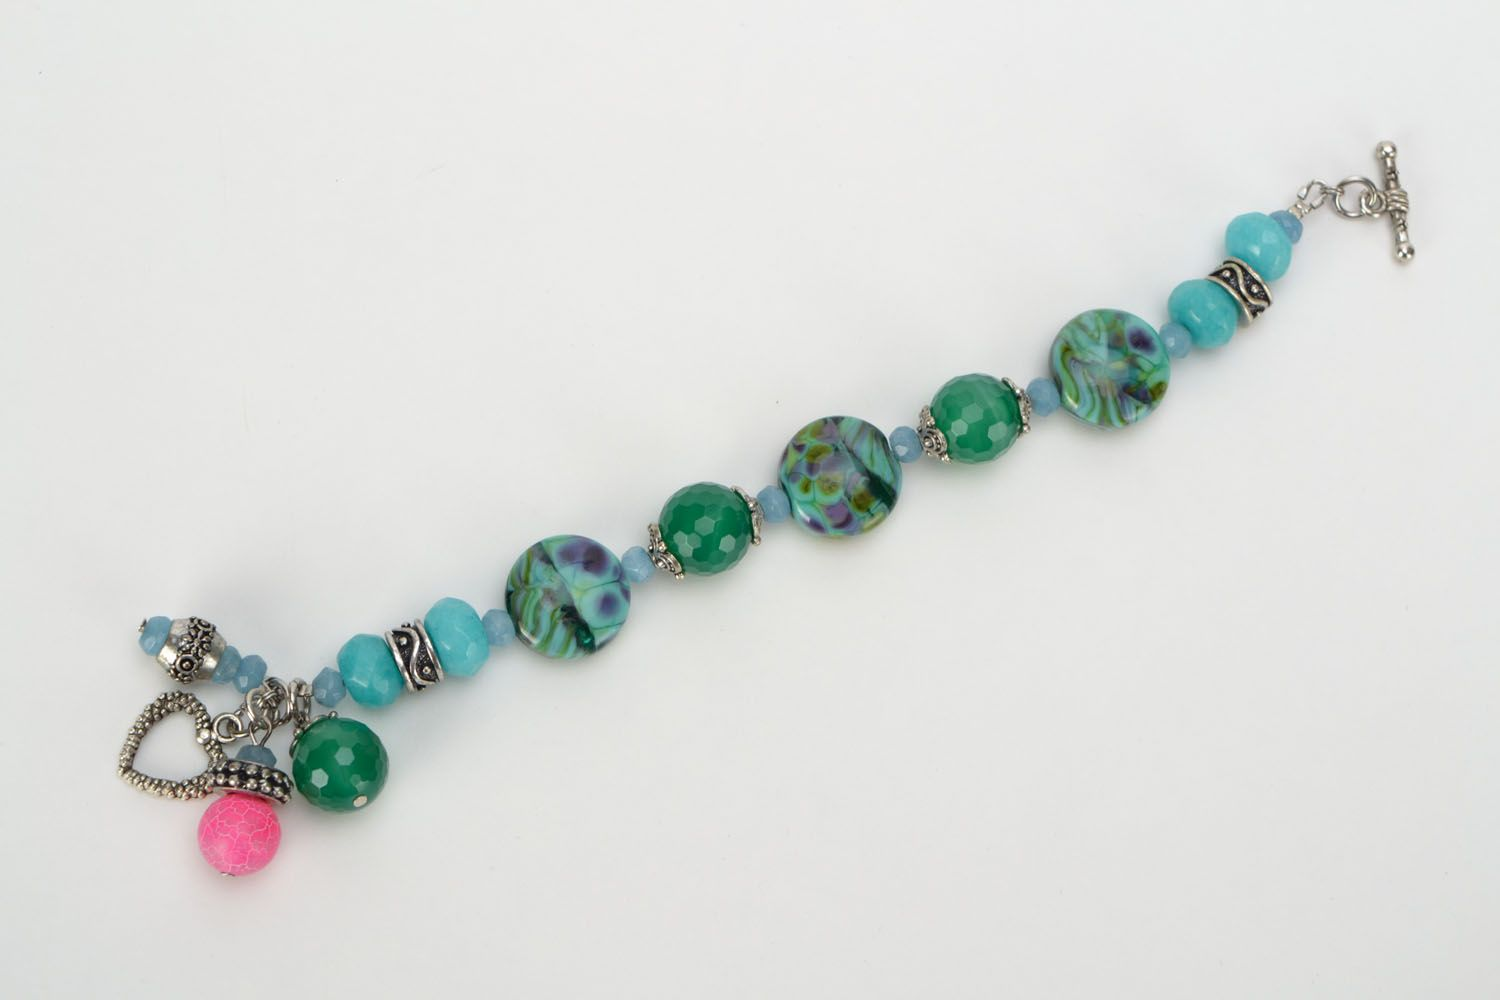 gemstone bracelets Bracelet with aquamarine and agate - MADEheart.com